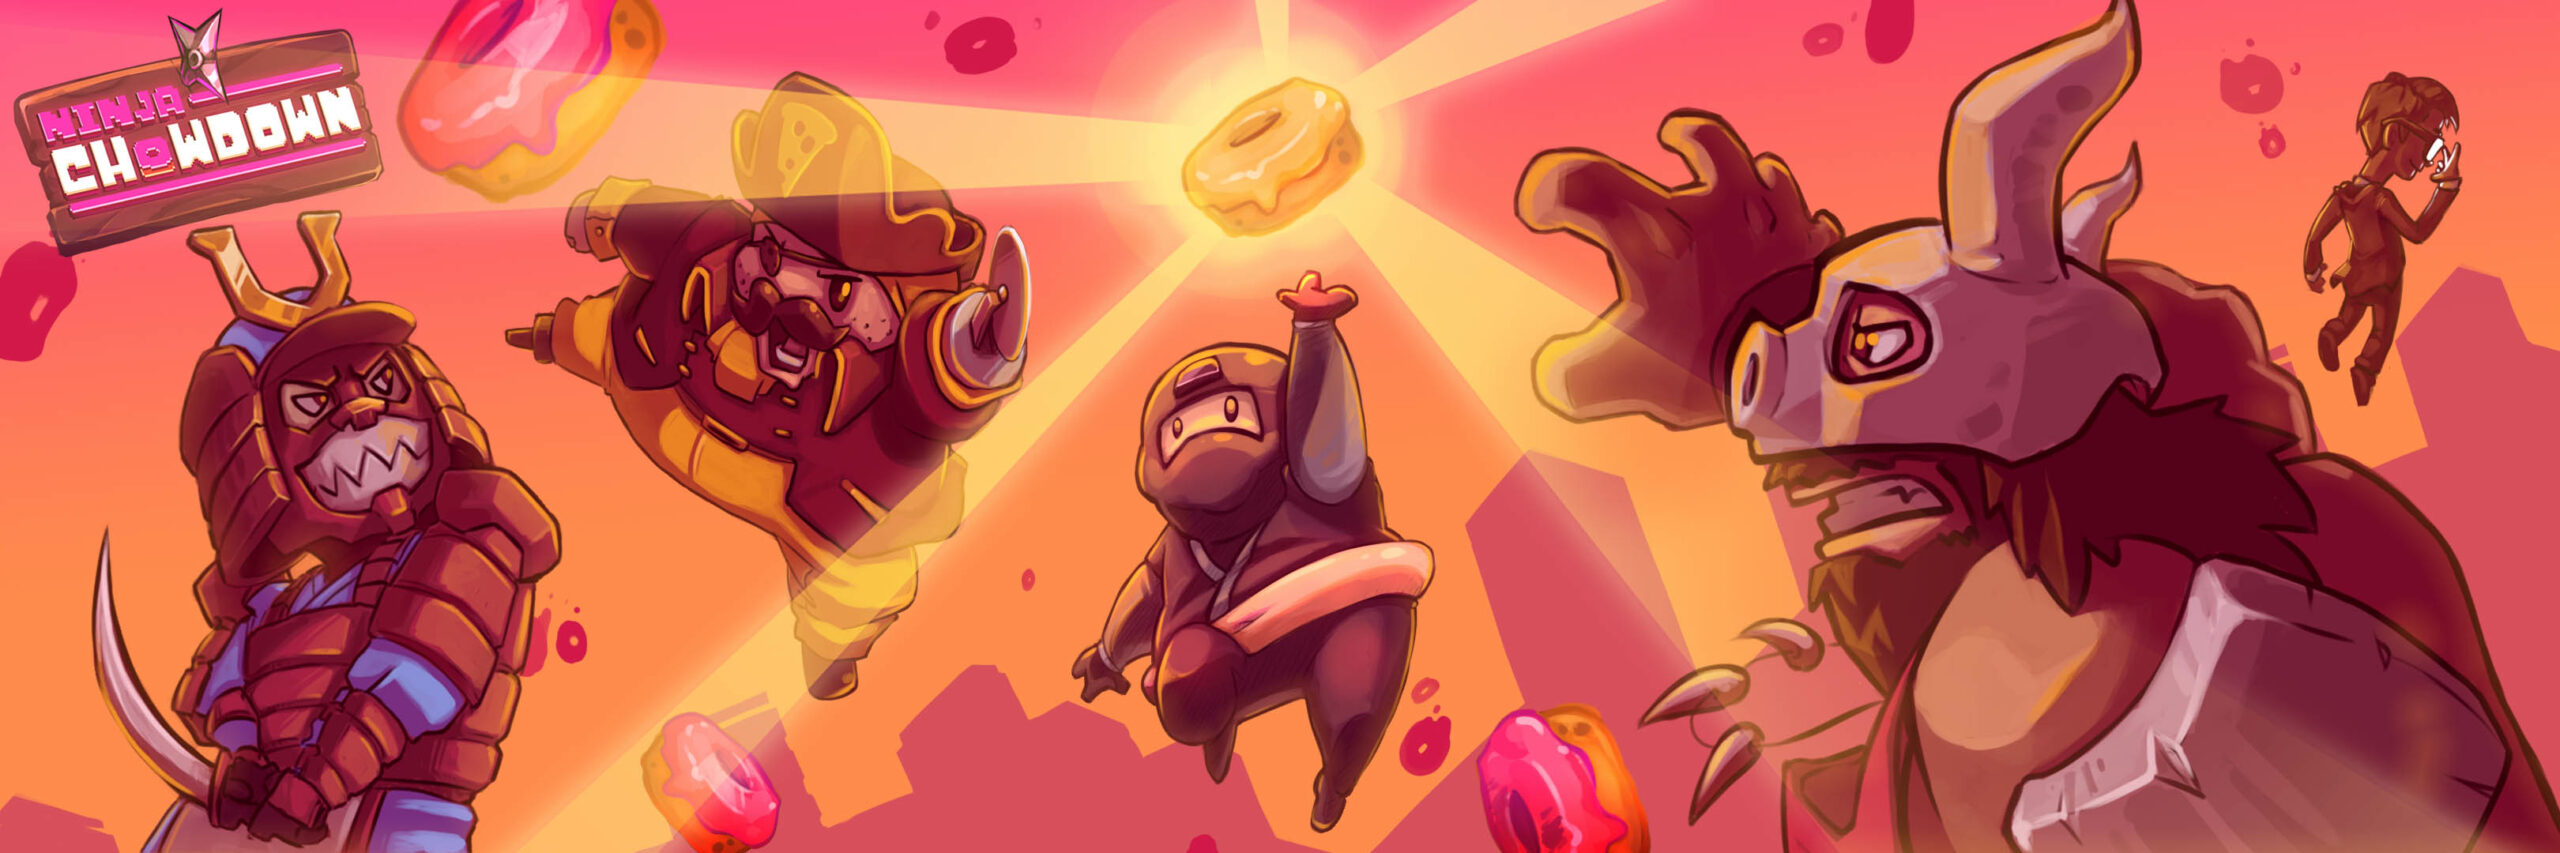 Ninja Chowdown on Android while Donatsu reaching for donut surrounded by bosses